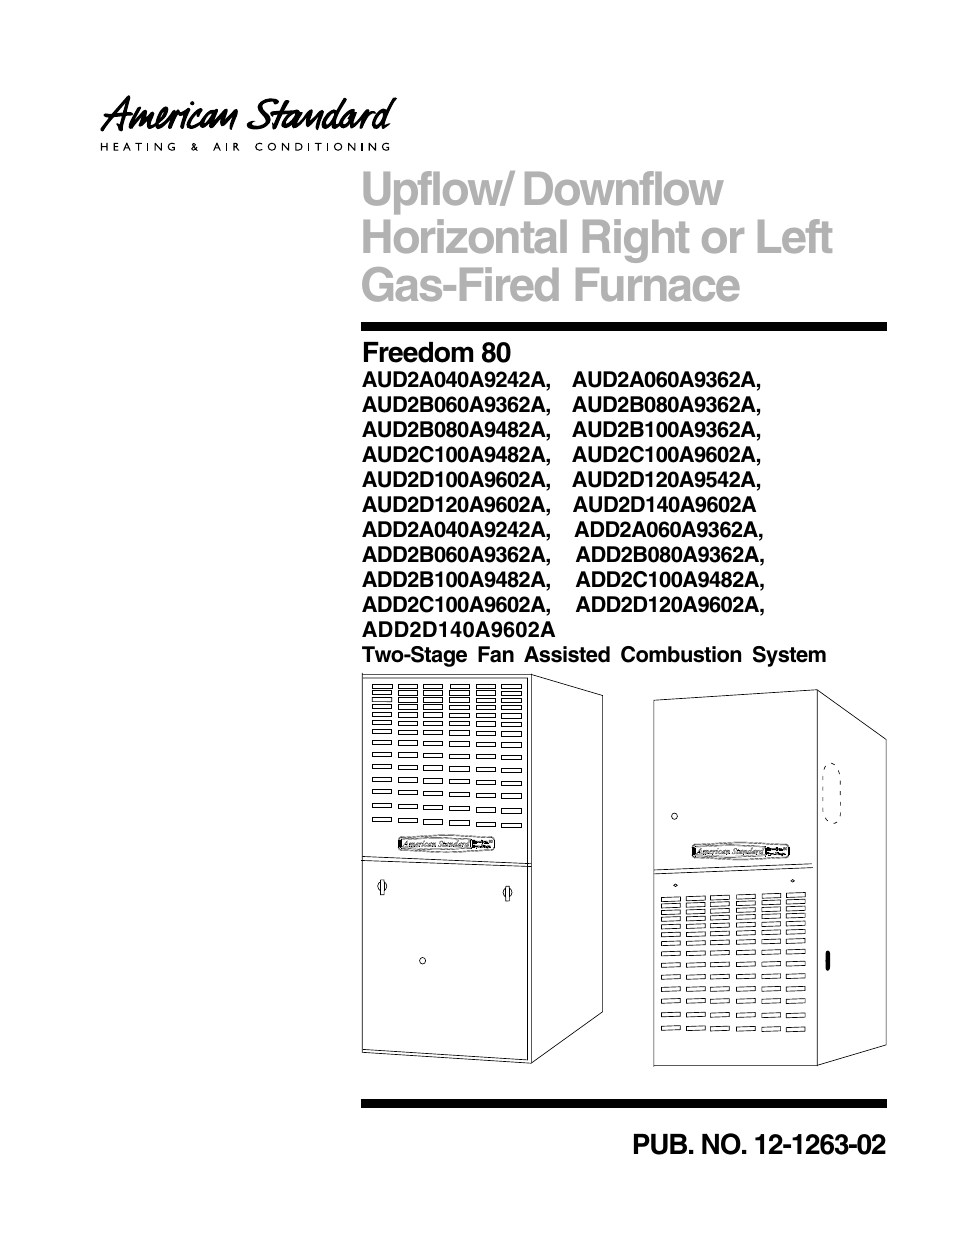 American Standard Freedom 80 User Manual 24 Pages